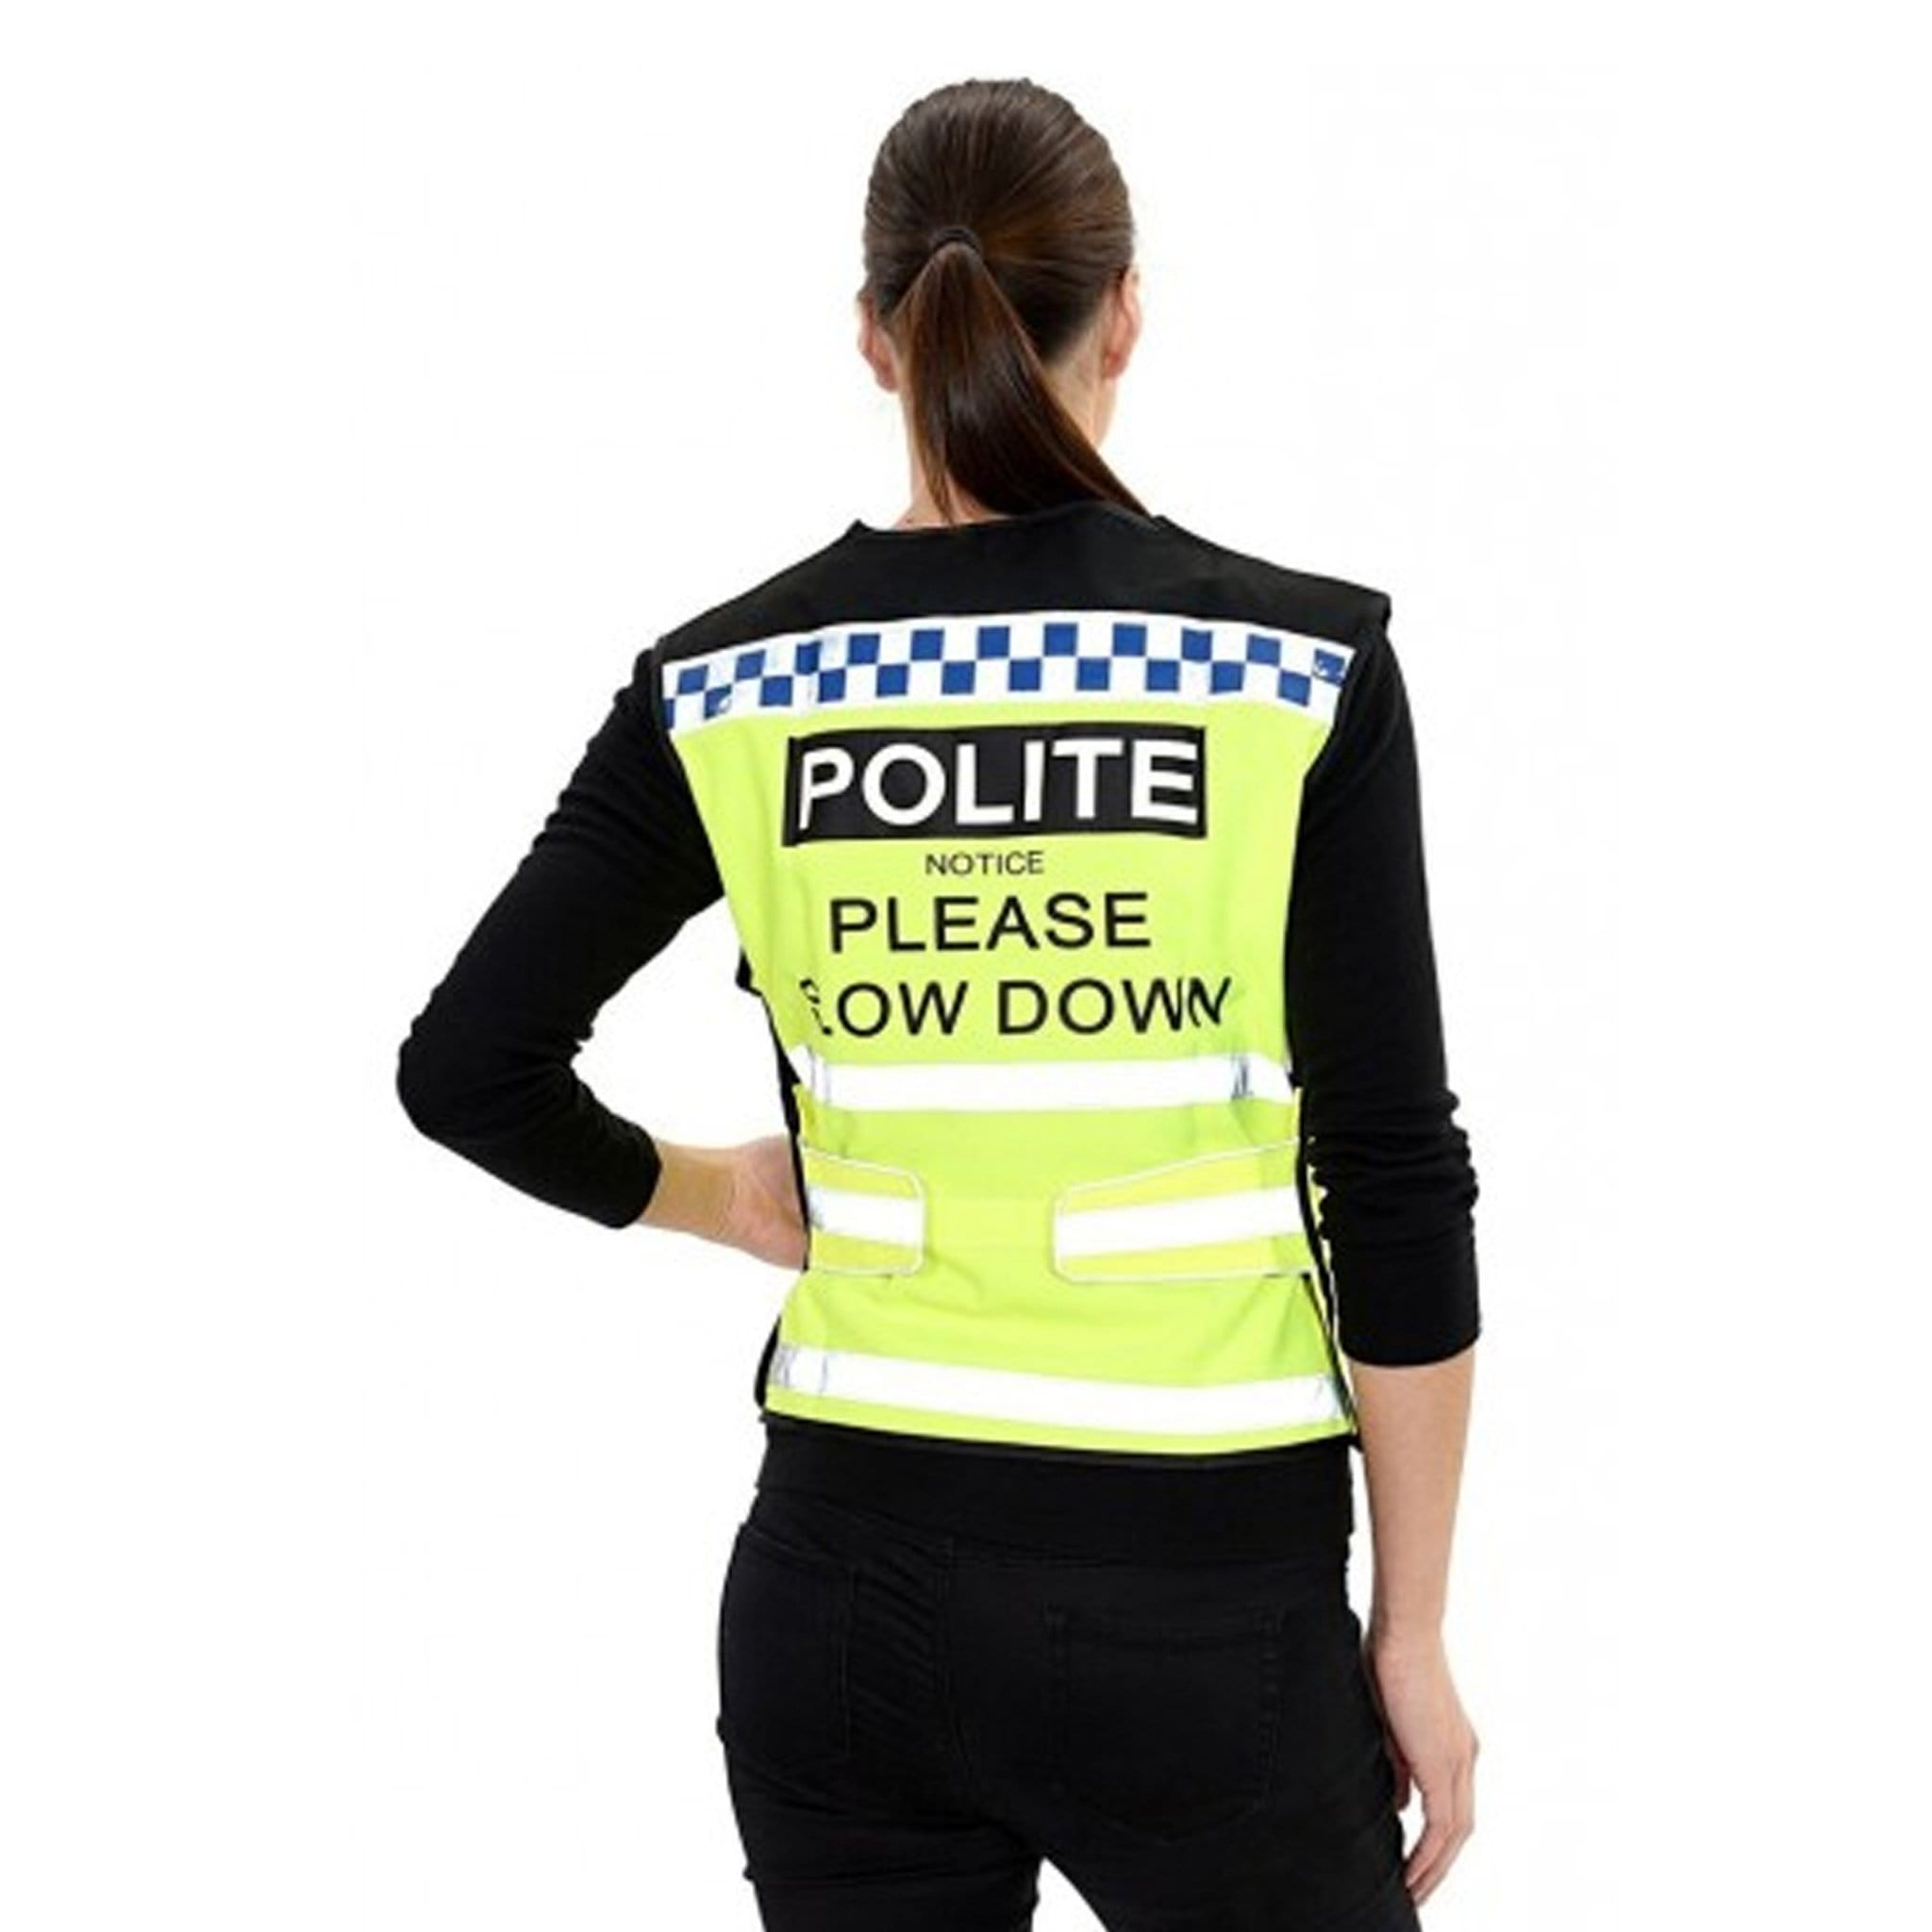 Equisafety Polite Waistcoat Please Slow Down Female Model Rear View 608014